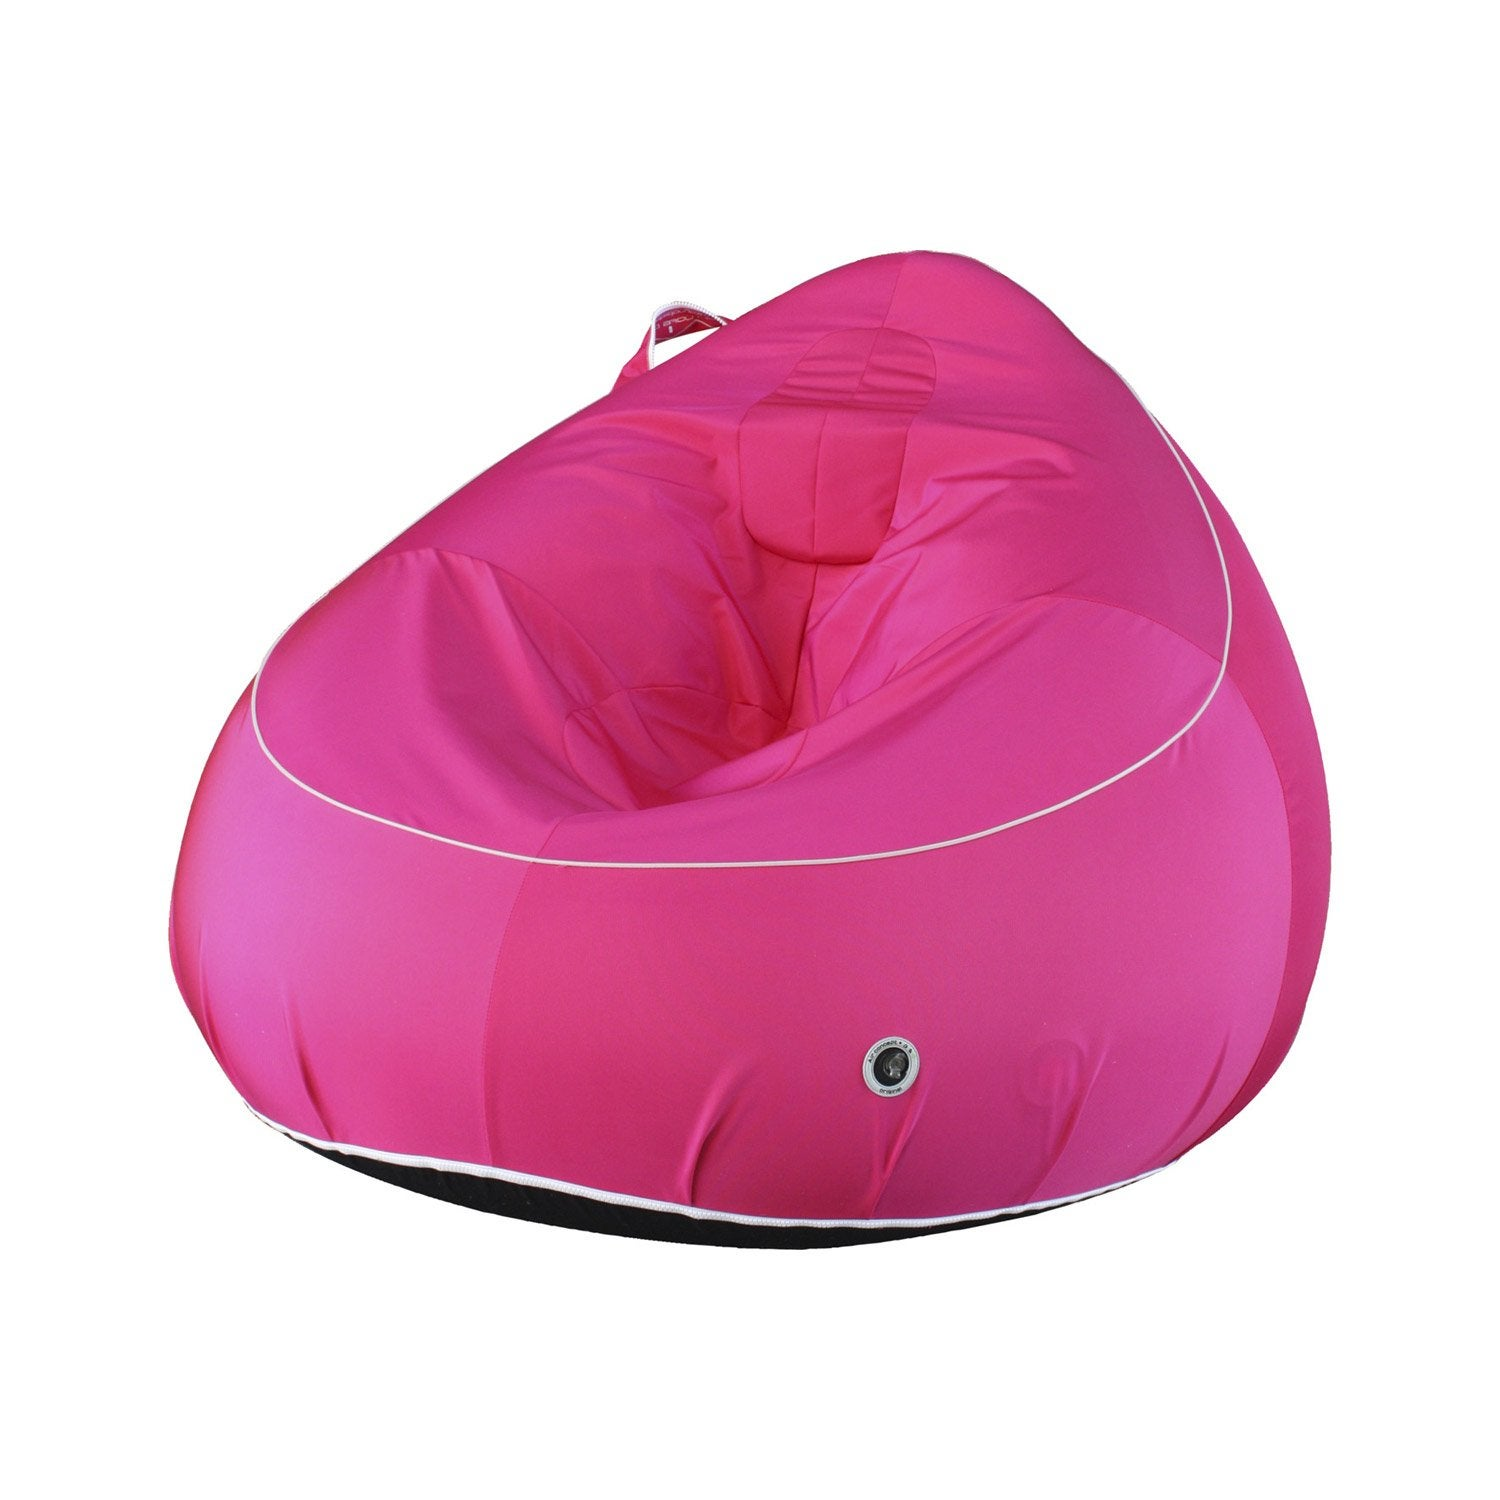 pouf en forme de fauteuil my note deco uni fuchsia. Black Bedroom Furniture Sets. Home Design Ideas